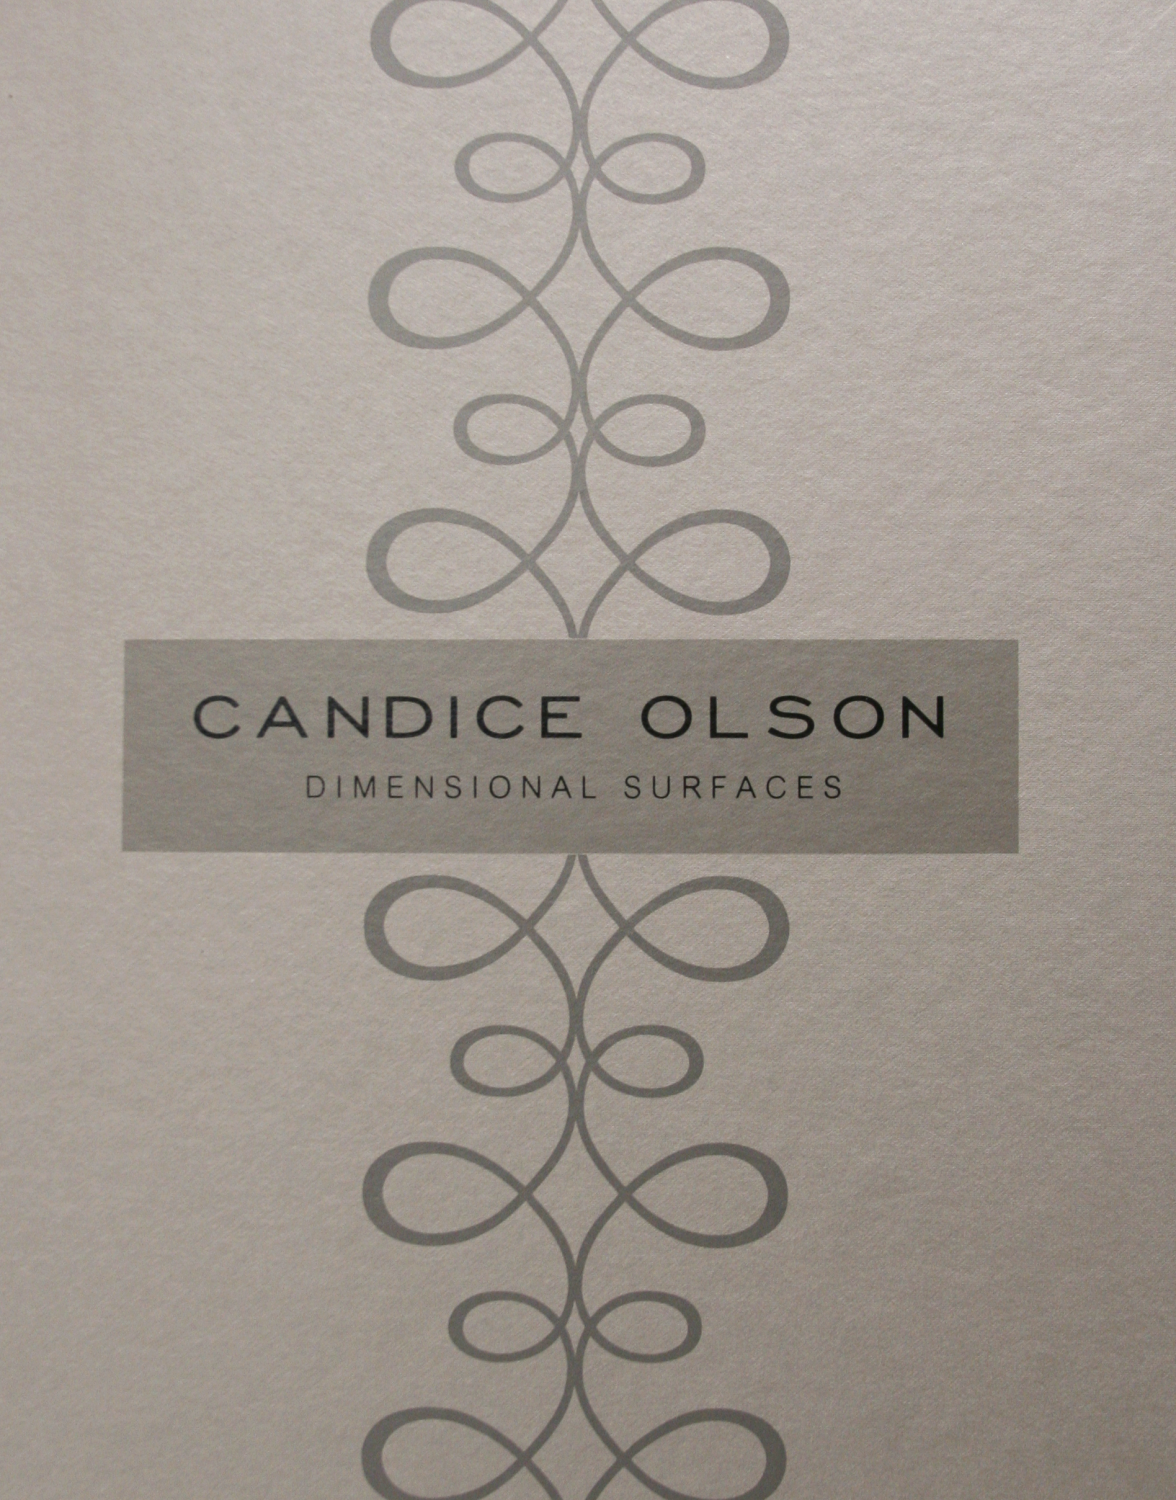 Dimensional Surfaces by Candice Olson